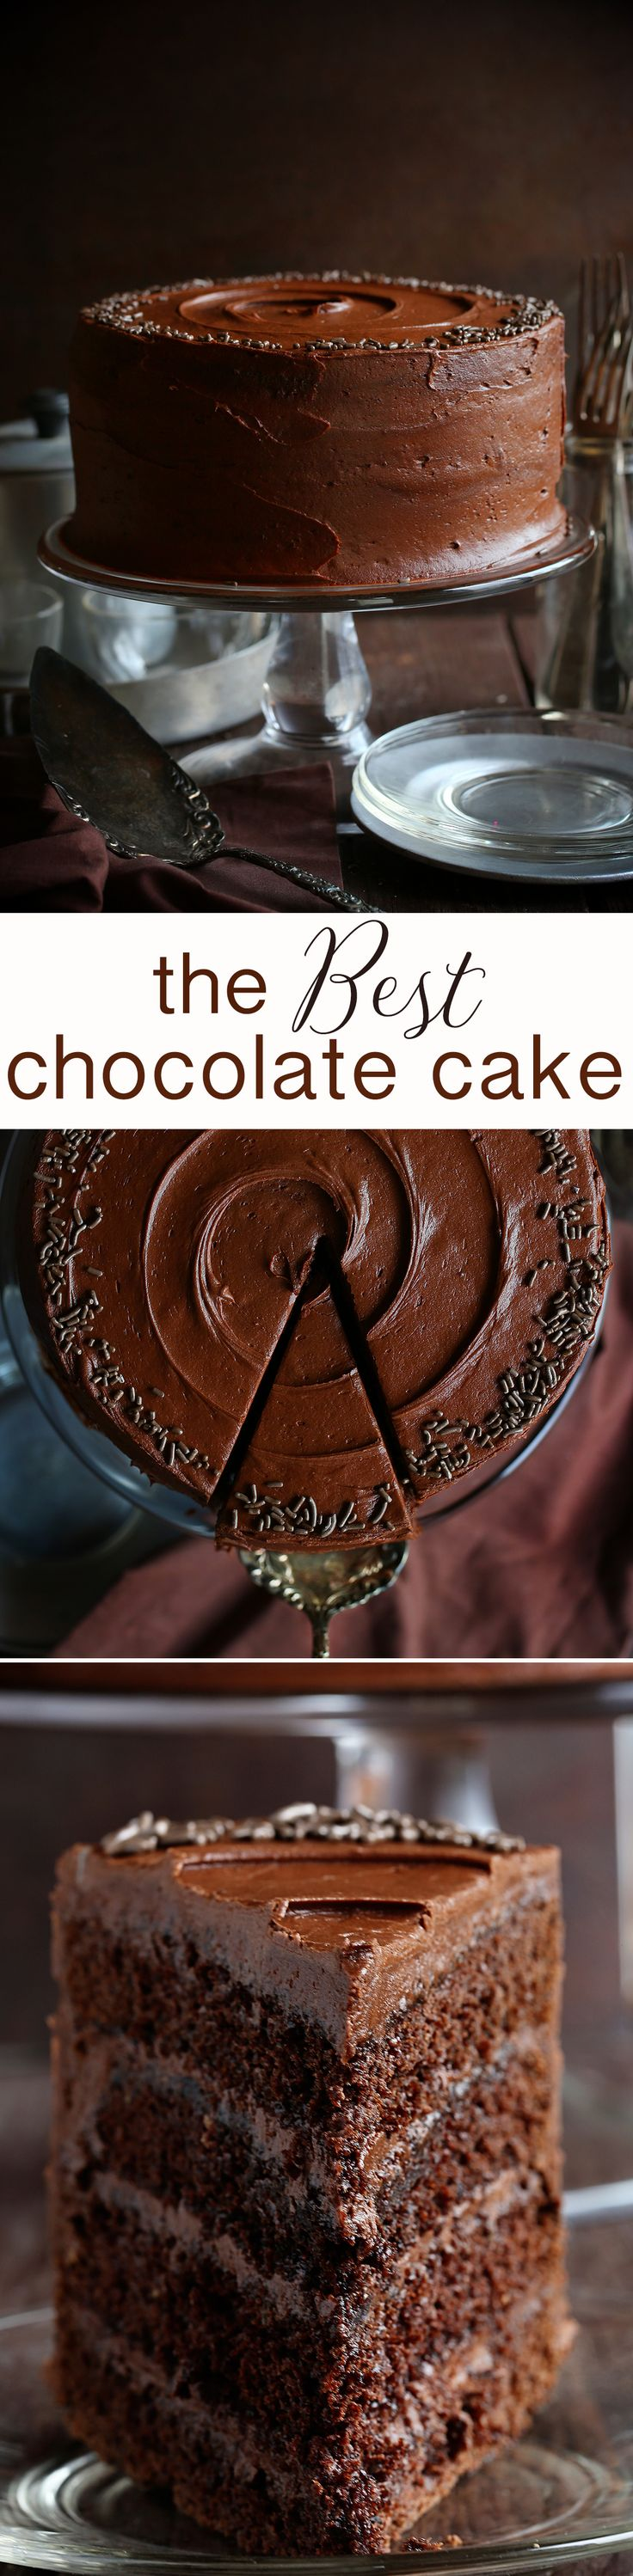 Using avocado in place of the fat makes this cake healthier than your average chocolate cake. But the flavor? Decadent as ever!!! (Easy Chocolate Cake)